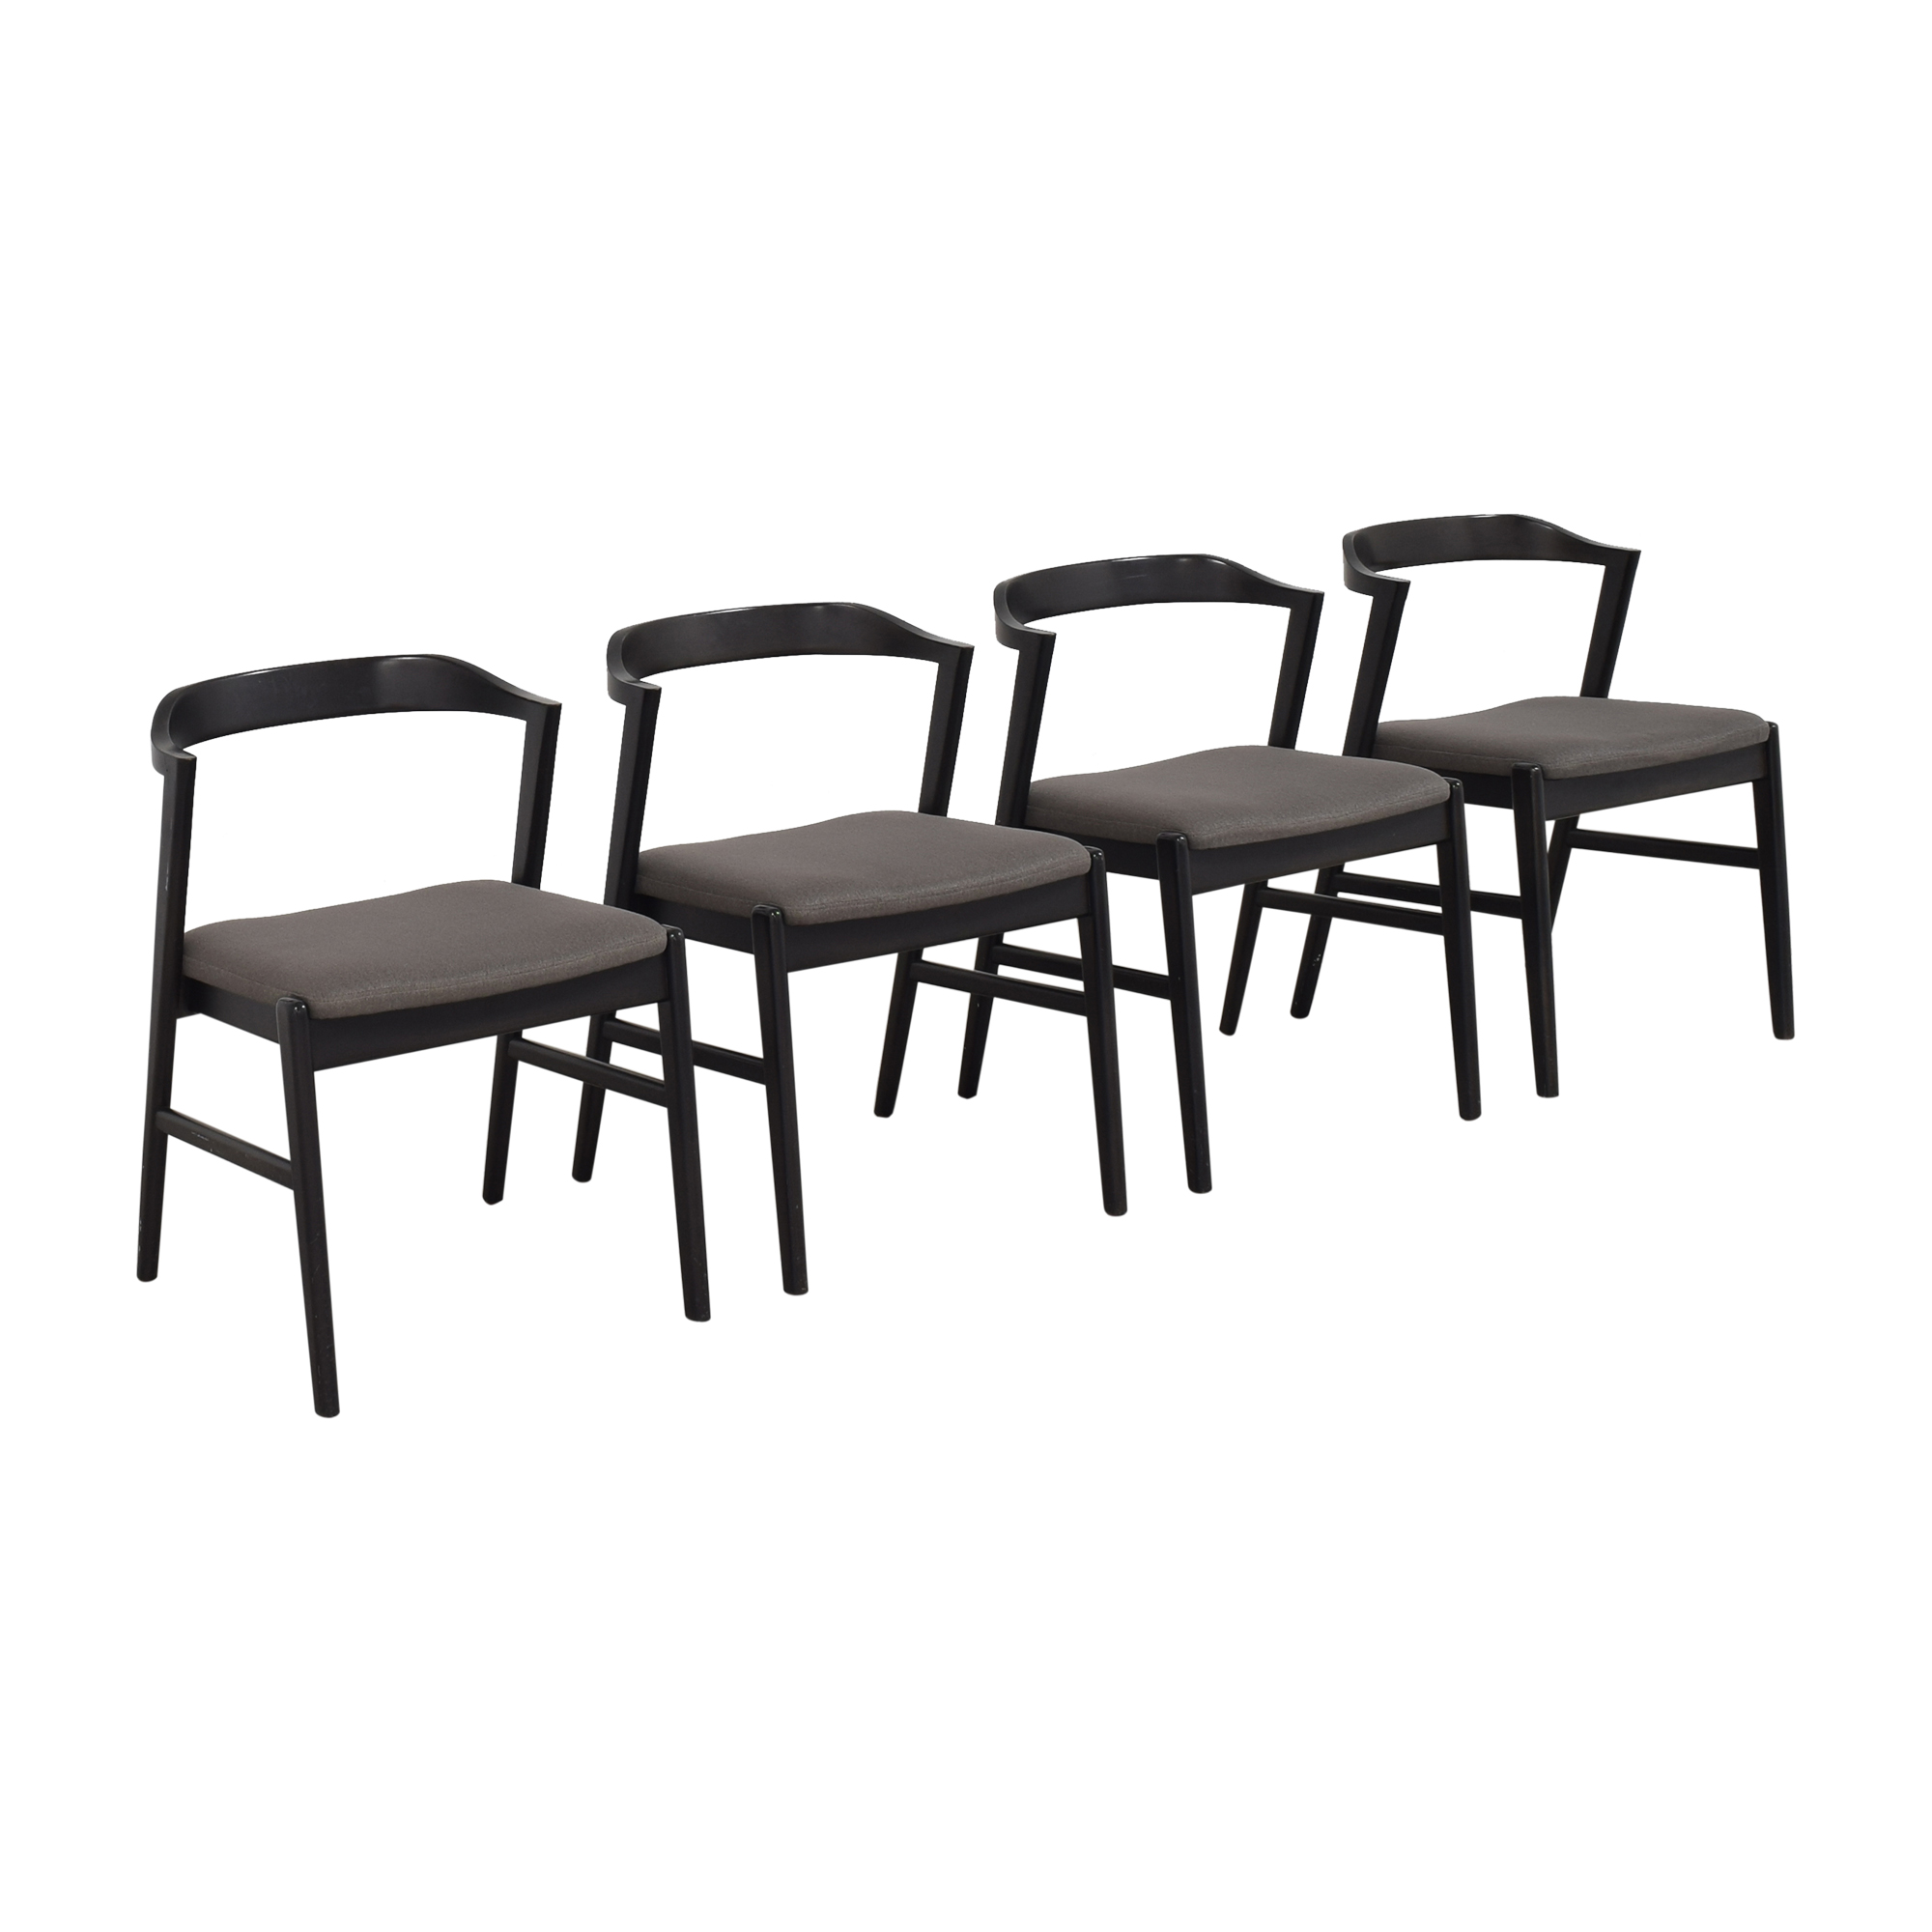 Room & Board Room & Board Jansen Dining Chairs used